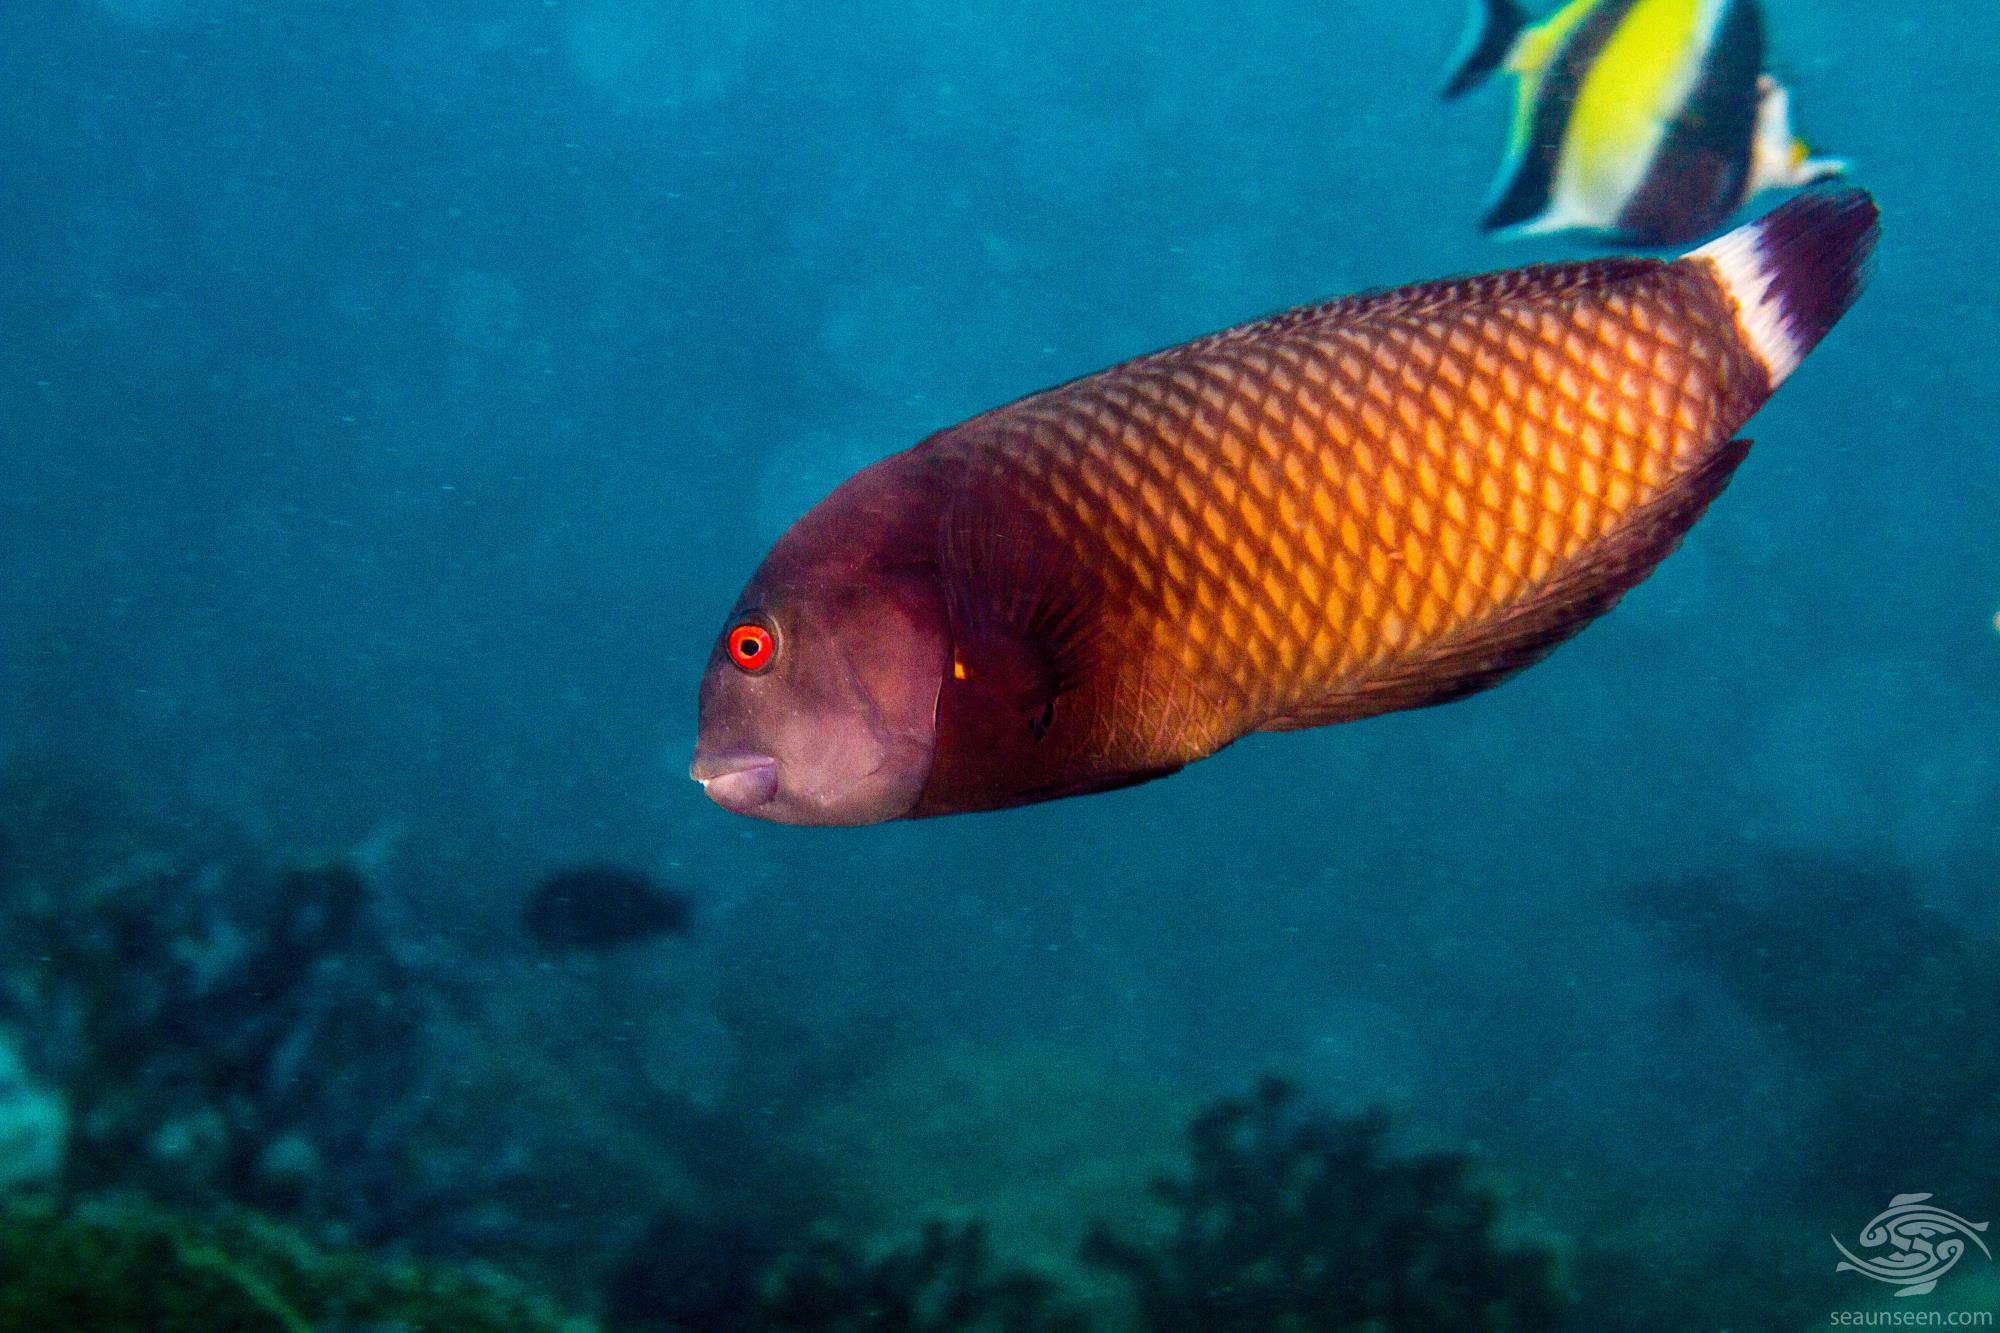 Rockmover Wrasse (Novaculichthys taeniourus) is also known as the Dragon Wrasse, Reindeer Wrasse